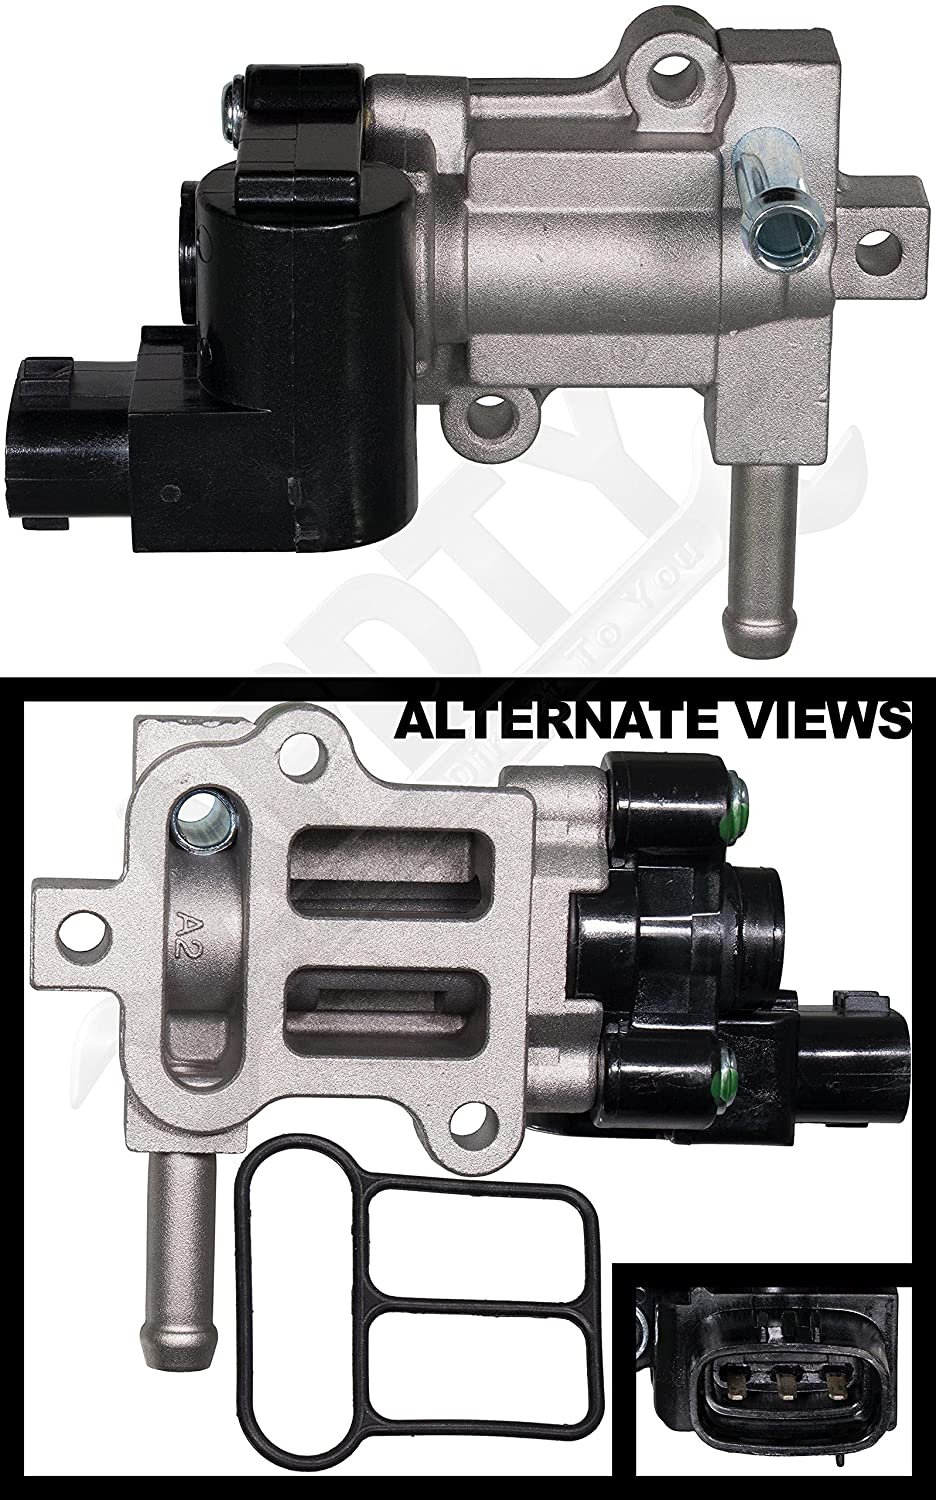 Apdty 134103 Iac Idle Air Control Valve Motor W Gasket 2000 Toyota 4runner Fits 2004 Tacoma 24l Or 27l 4 Cylinder Engine Replaces 22270 75050